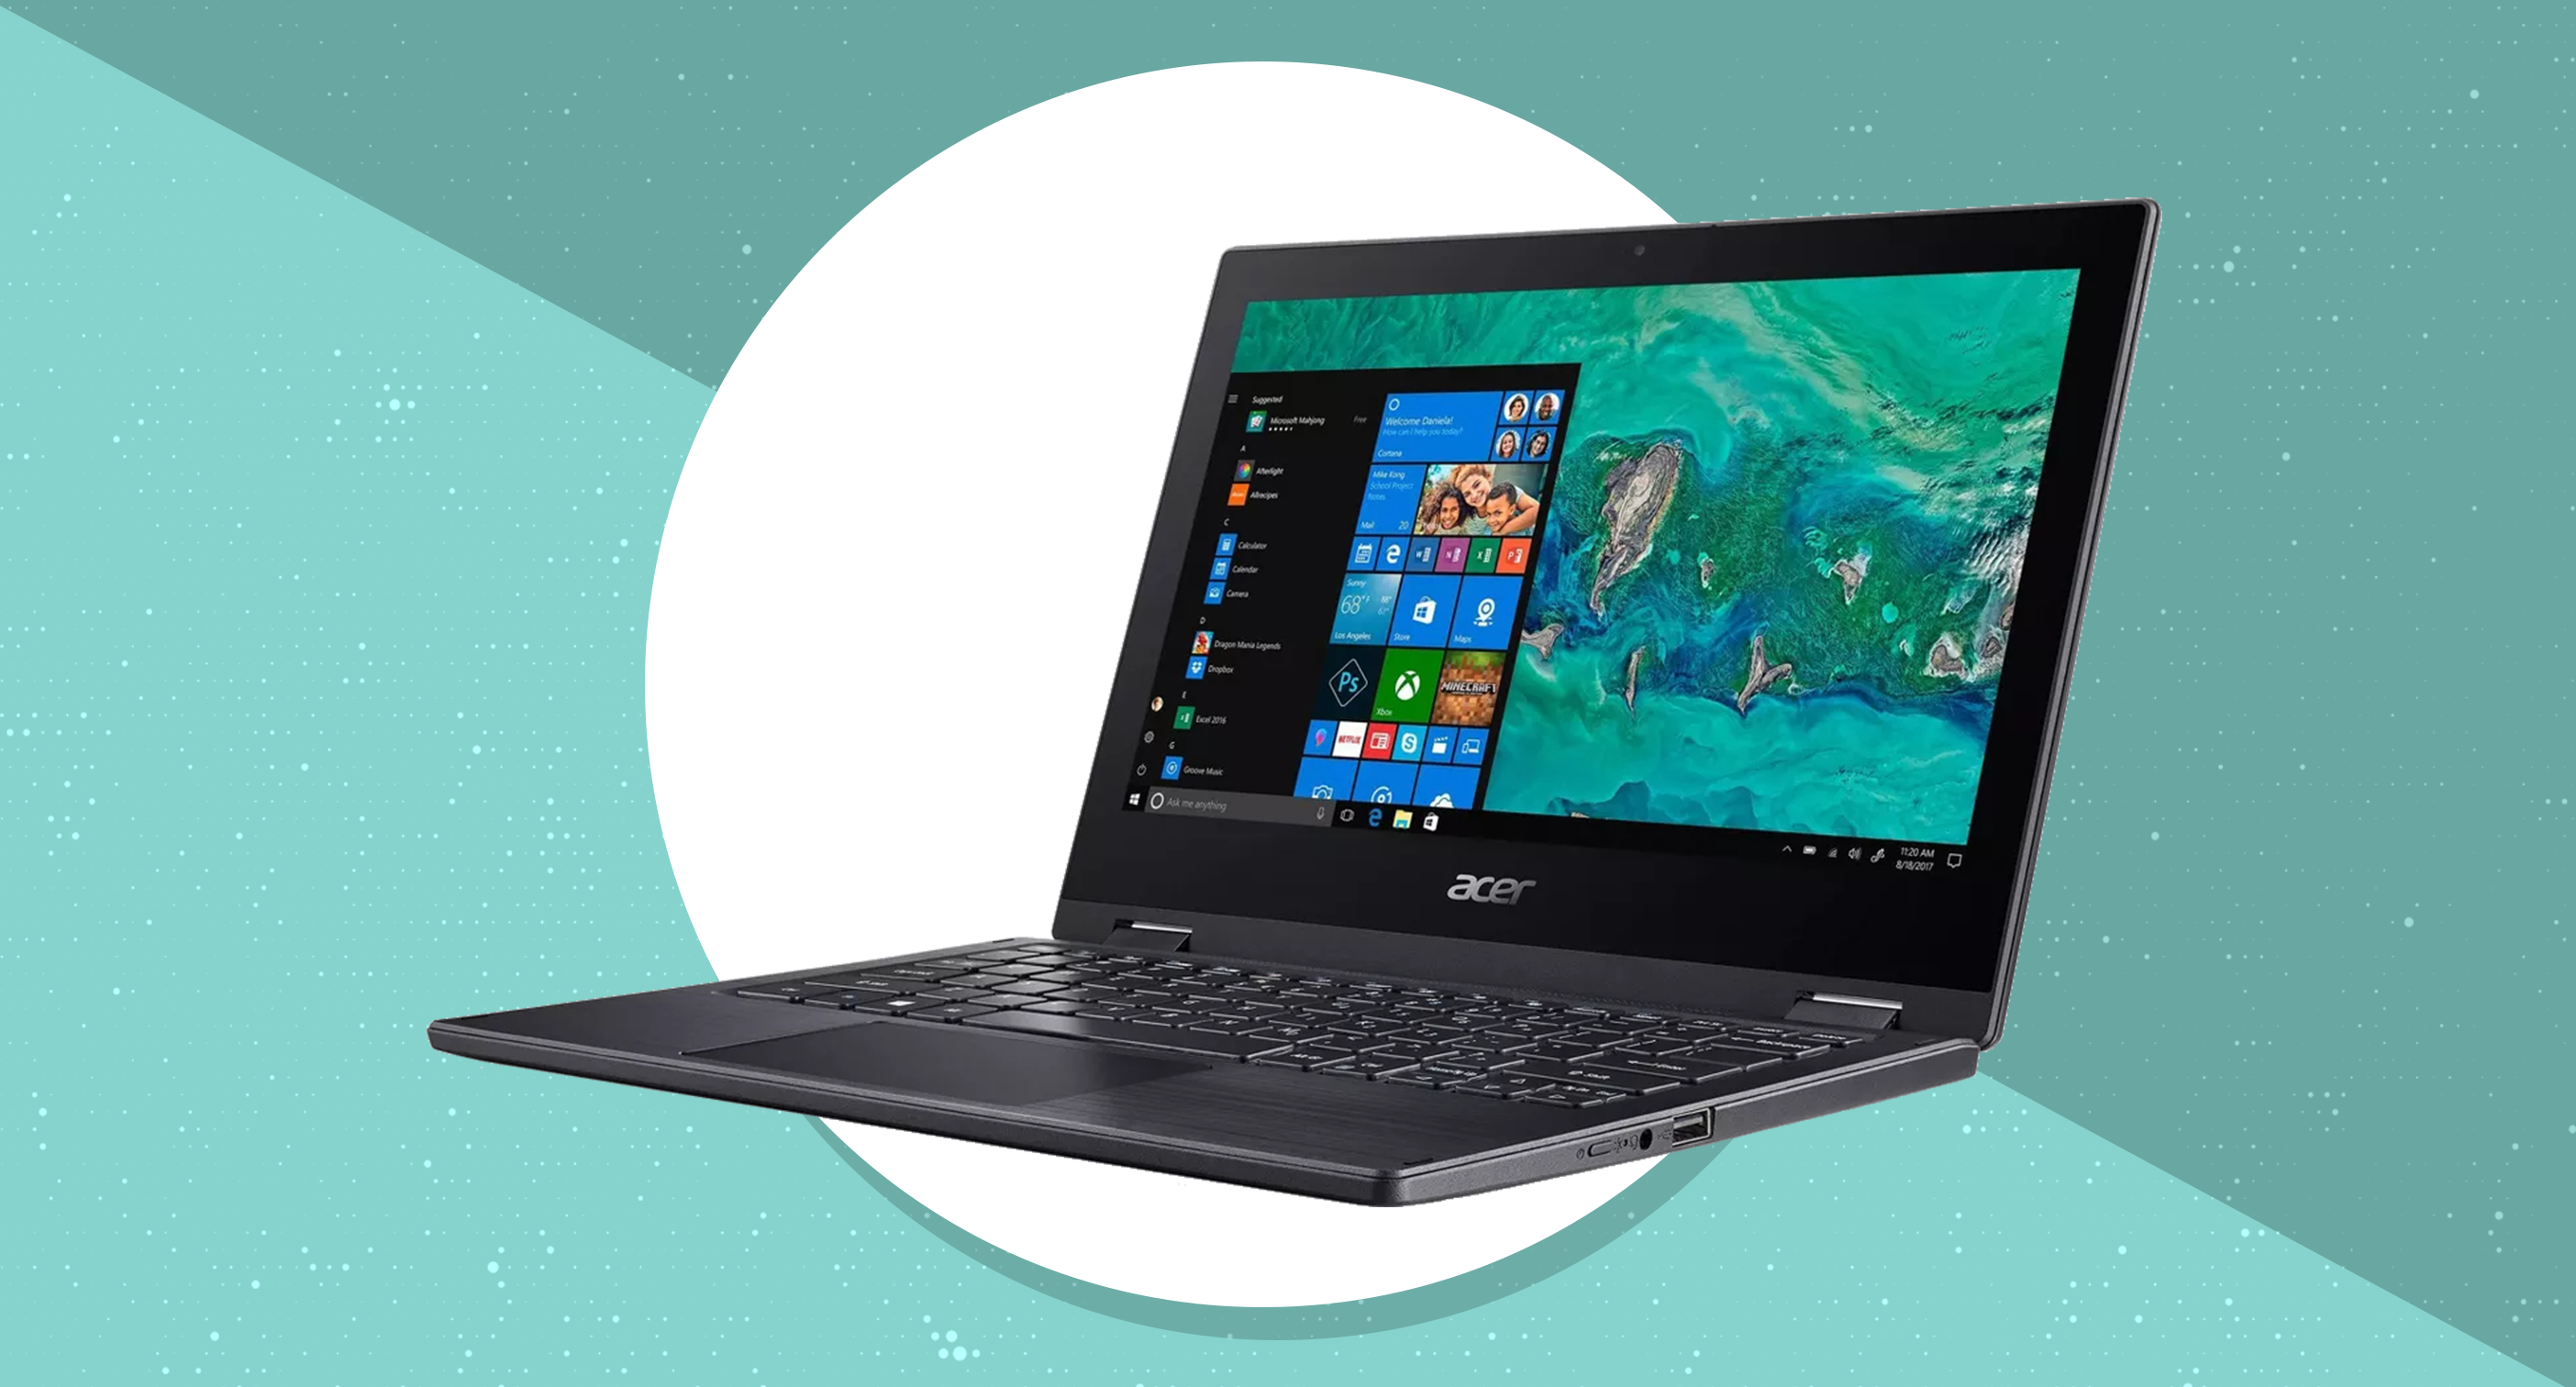 Target just knocked $130 off this compact Acer laptop—snag it now for just $200